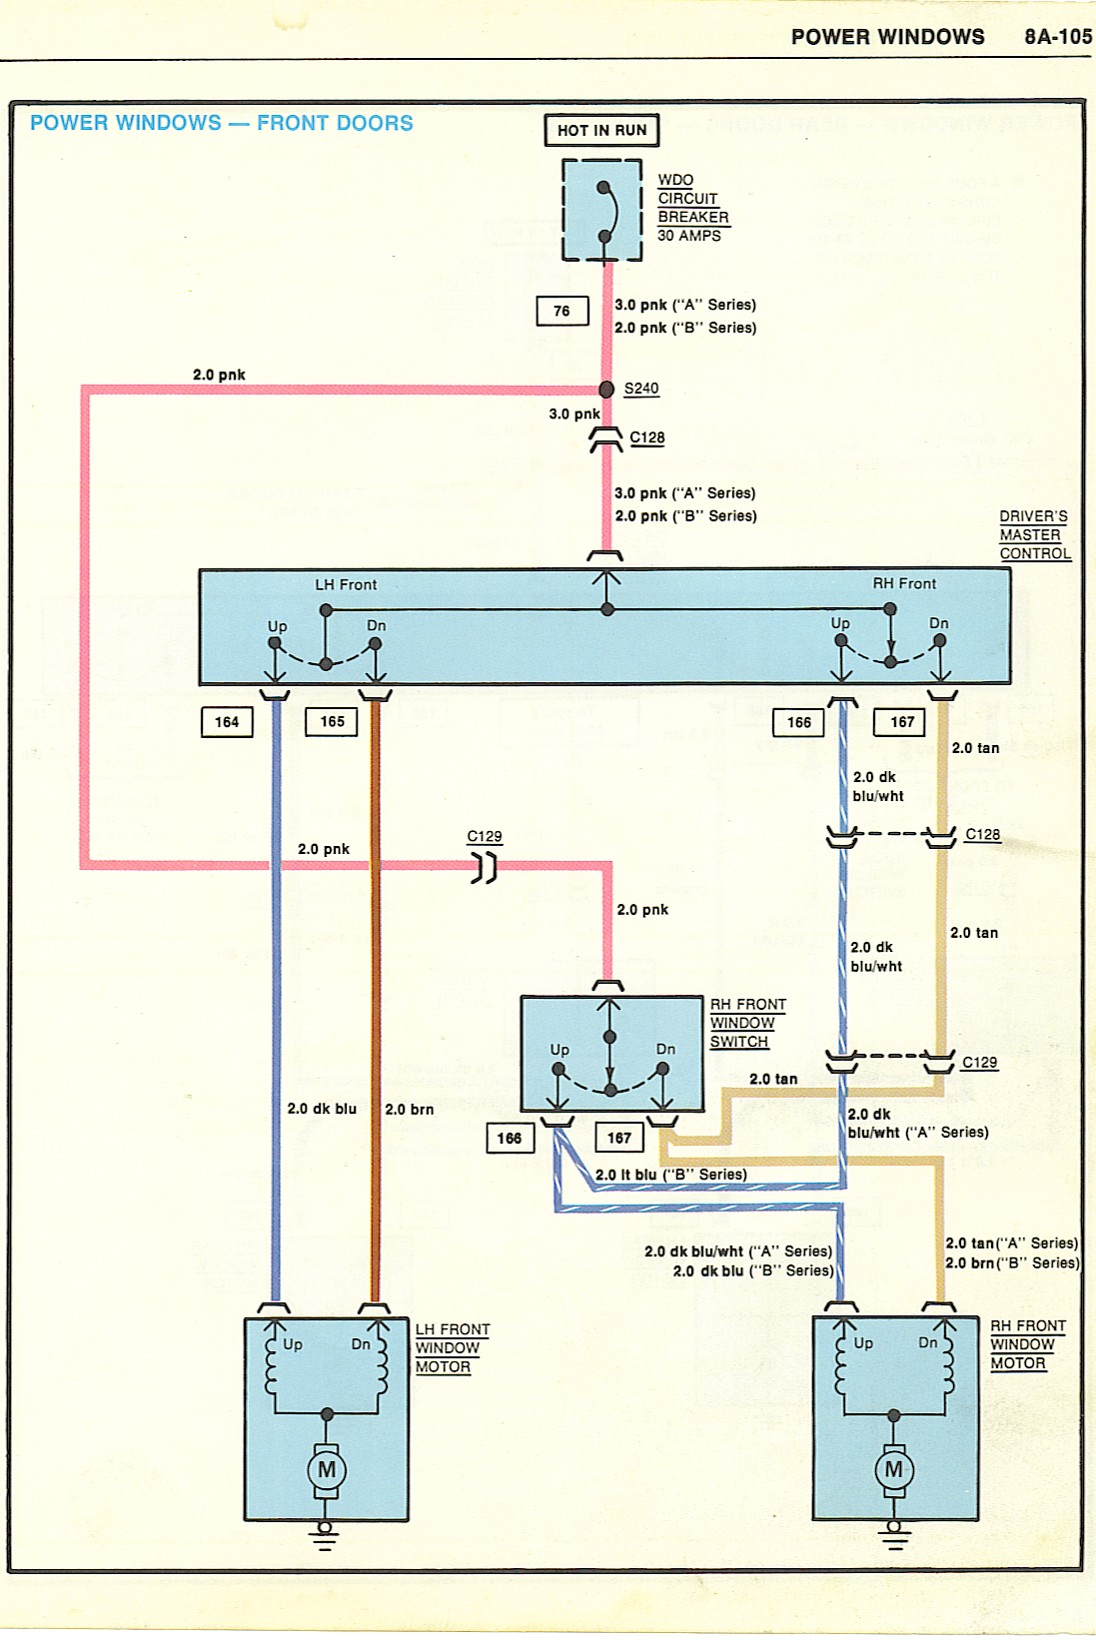 2000 camaro bcm wiring diagram    wiring    diagrams     wiring    diagrams